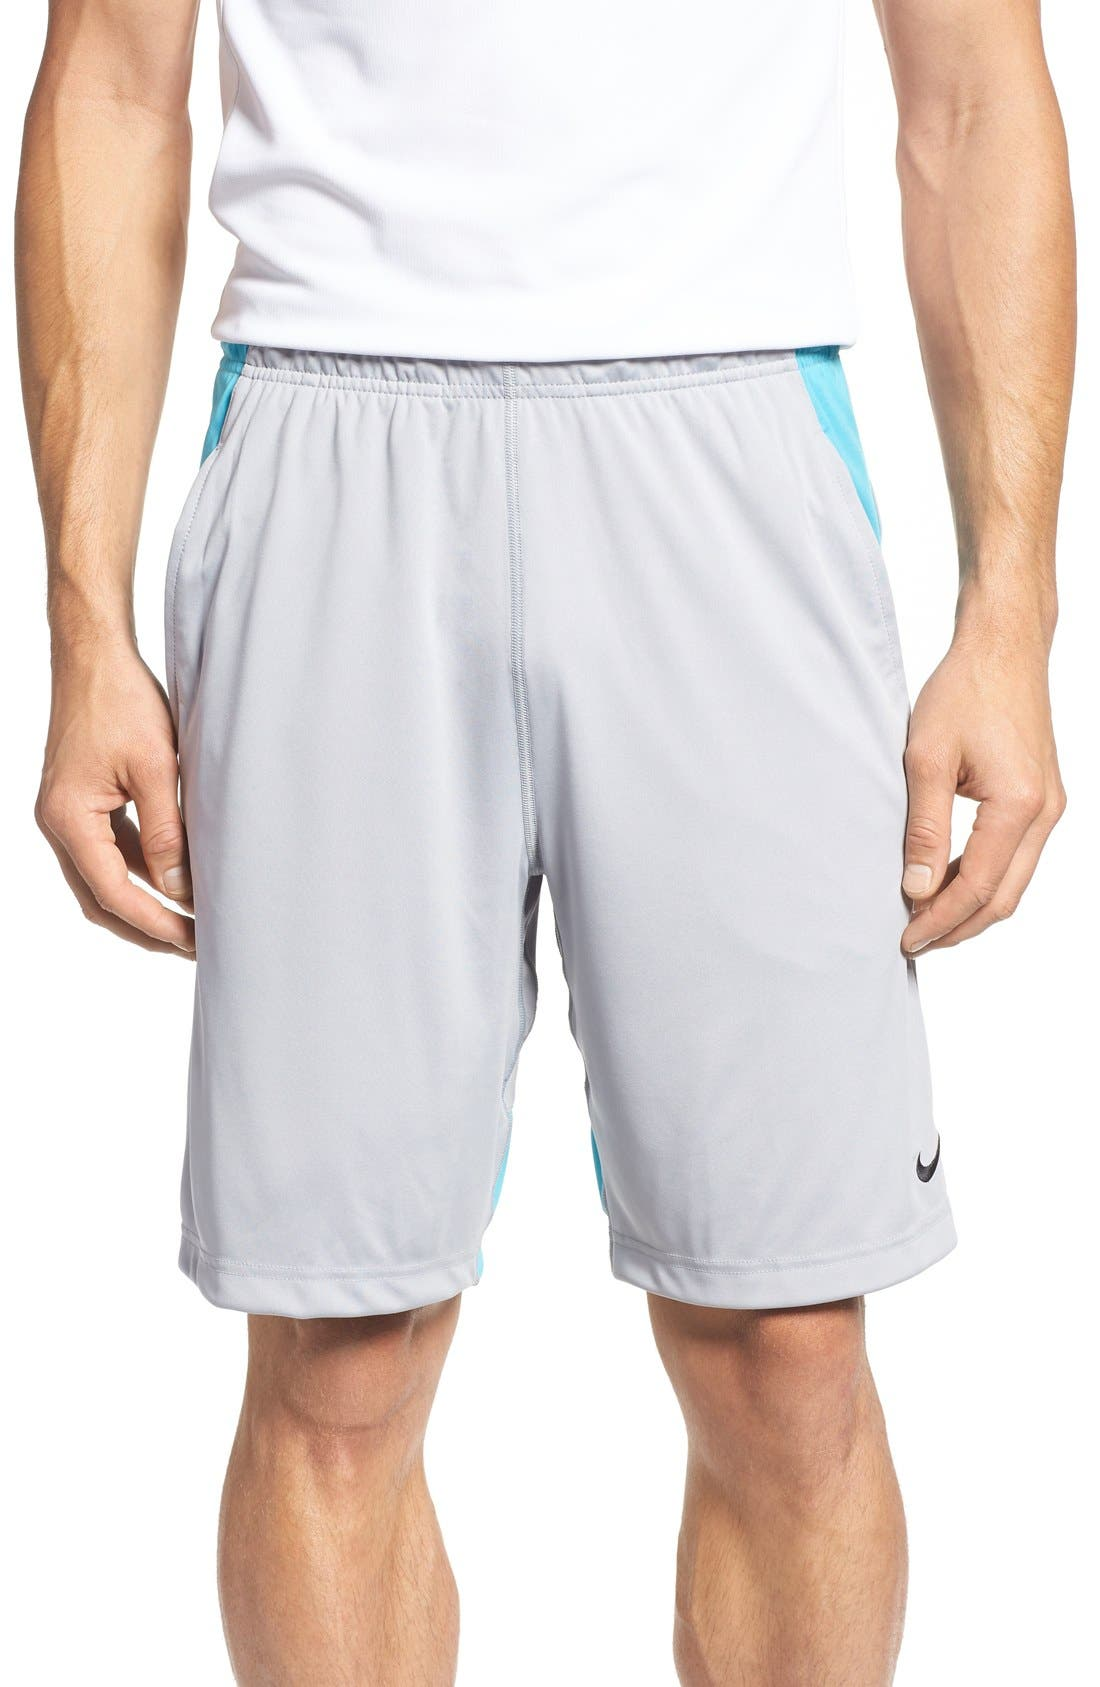 'Fly' Dri-FIT Training Shorts,                             Main thumbnail 13, color,